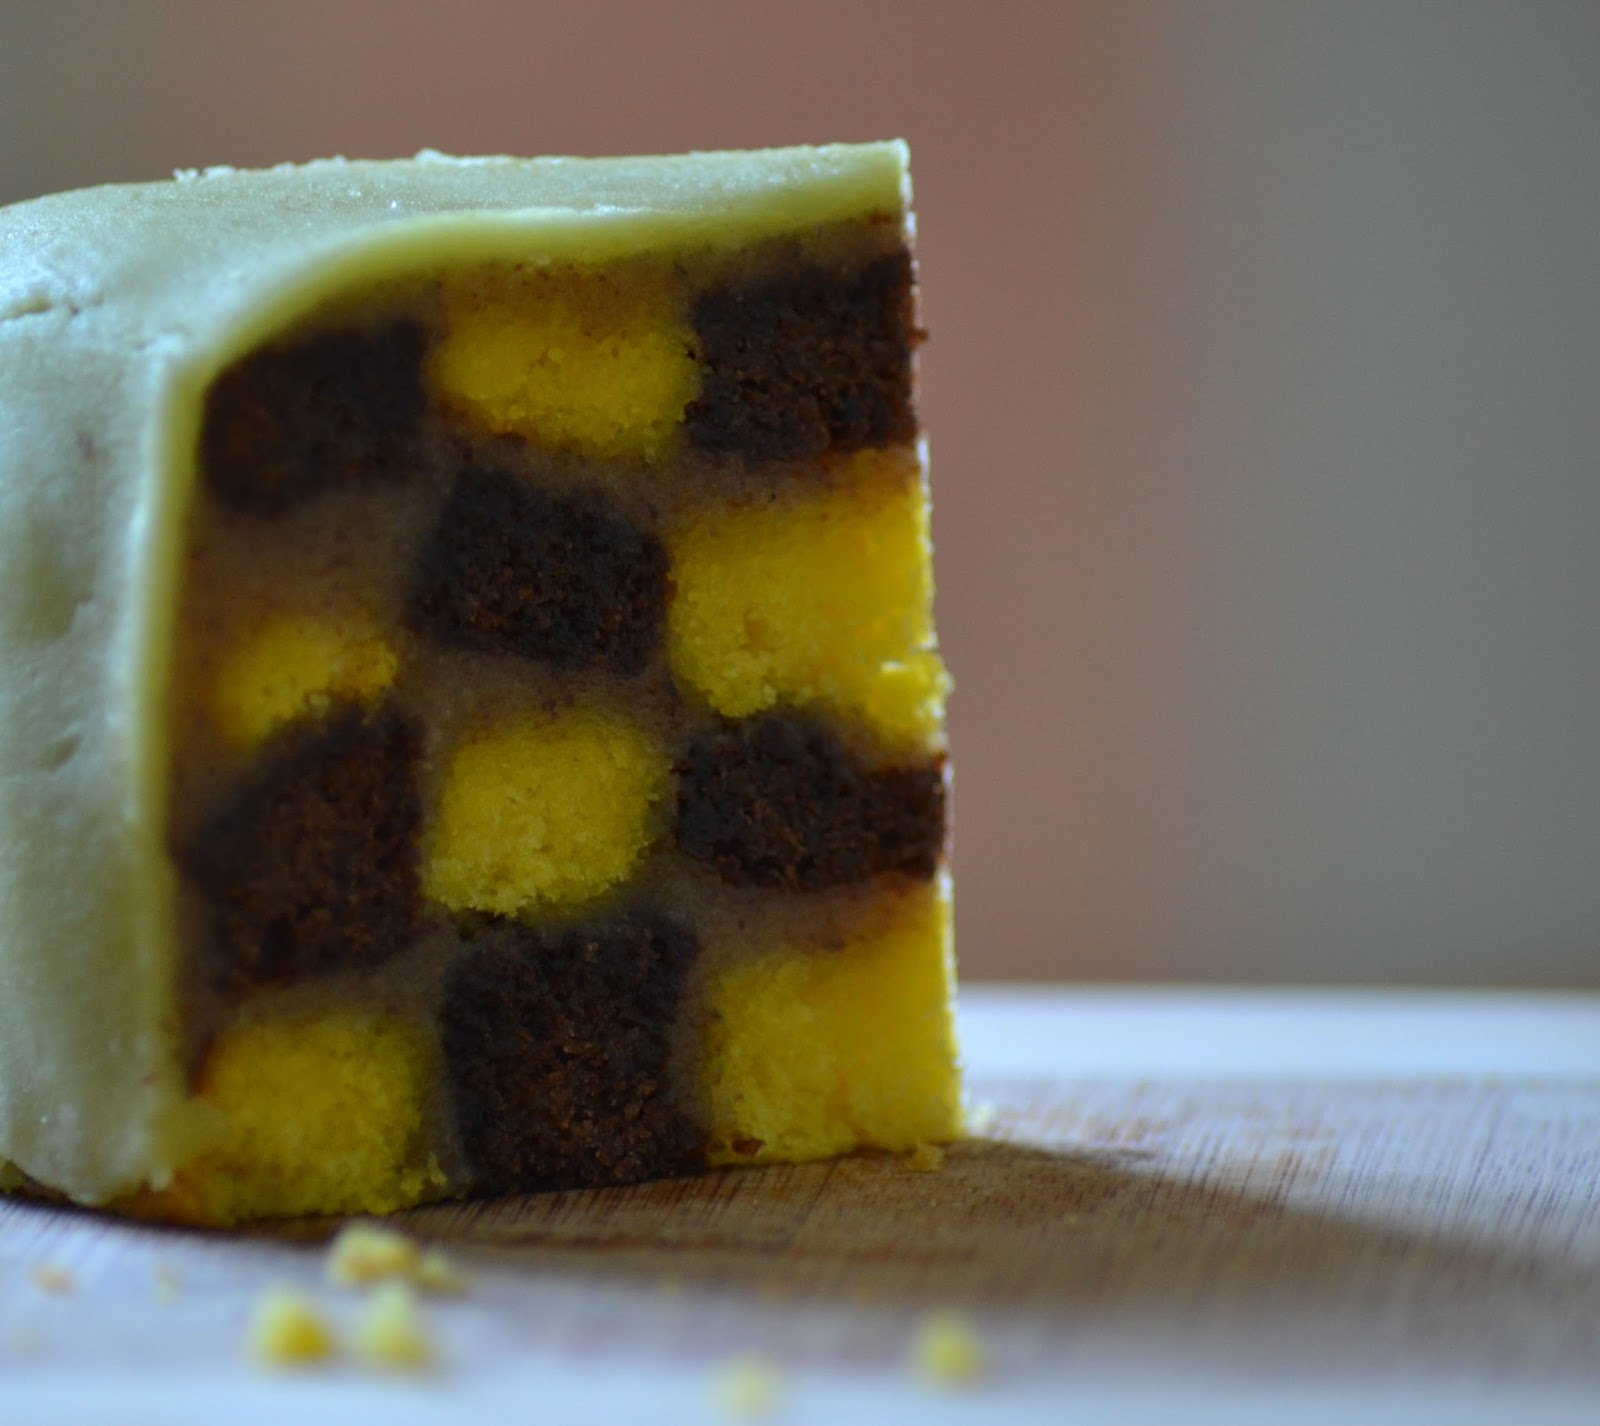 Recept Heel Holland bakt 2015: Battenberg cake